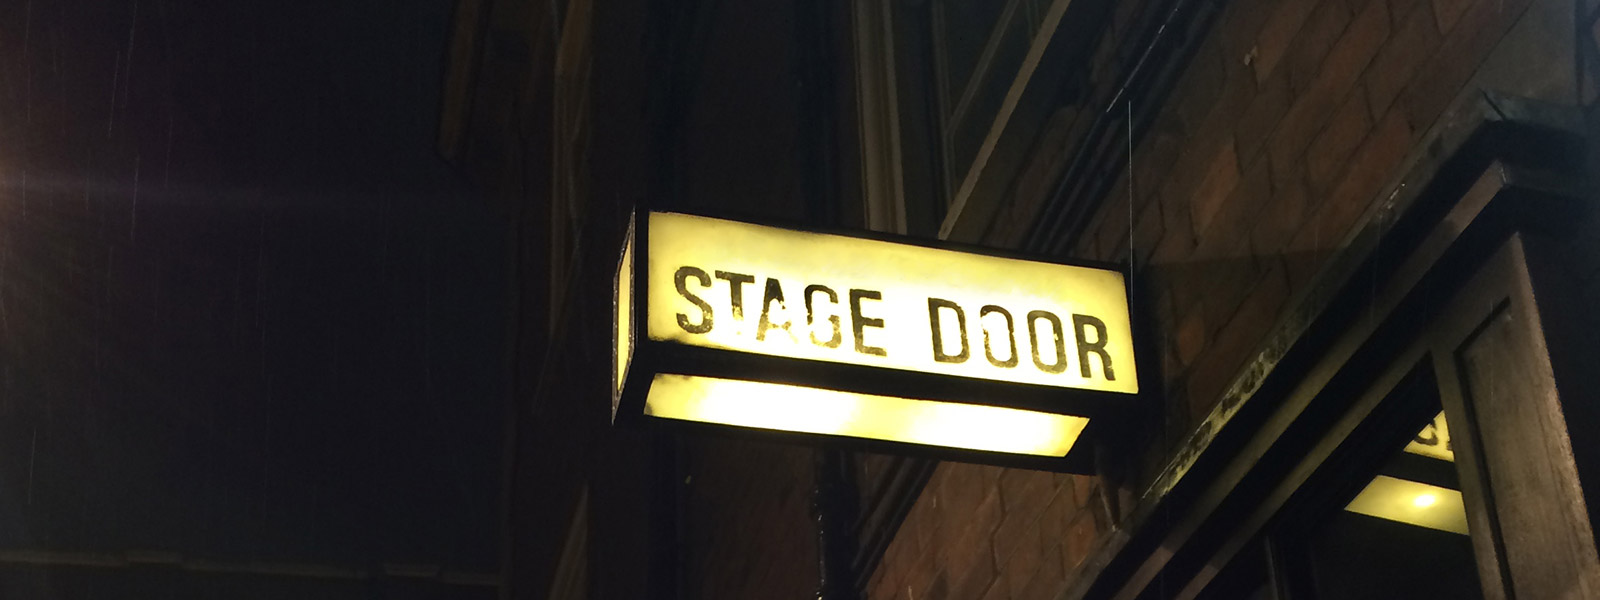 stage-door-web-1600x600